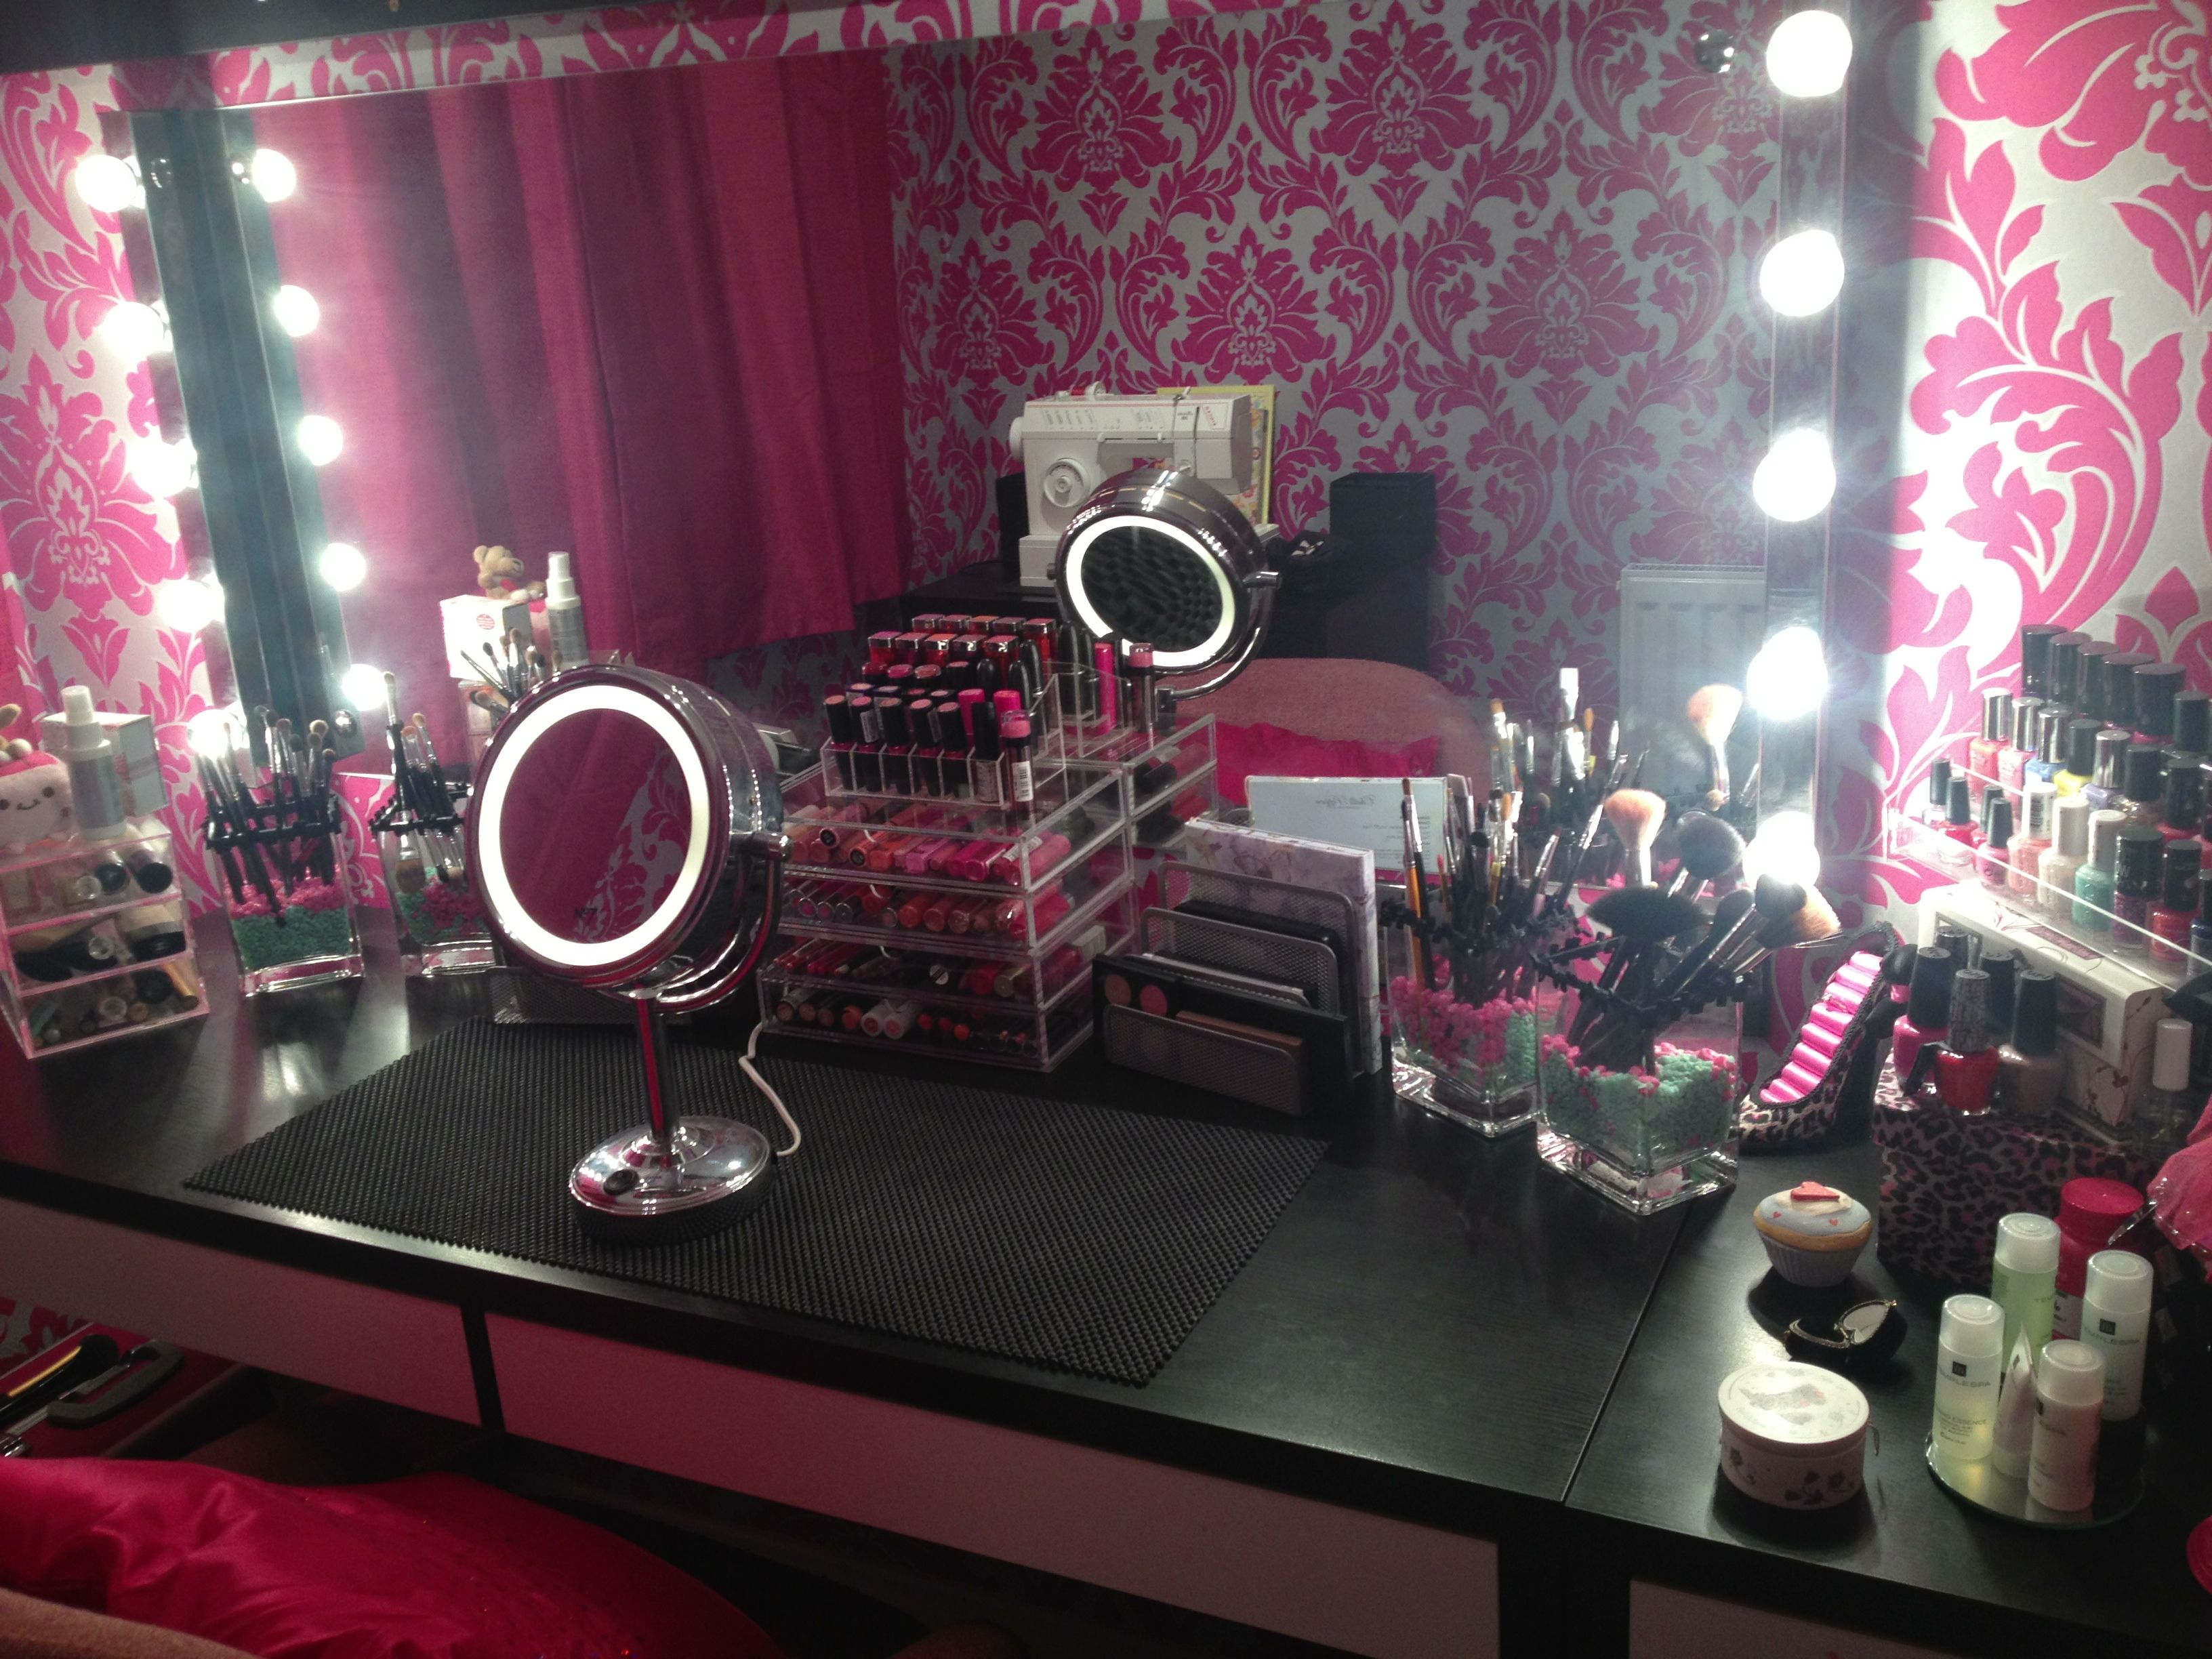 Makeup room, A hollywood vanity style makeup room ...